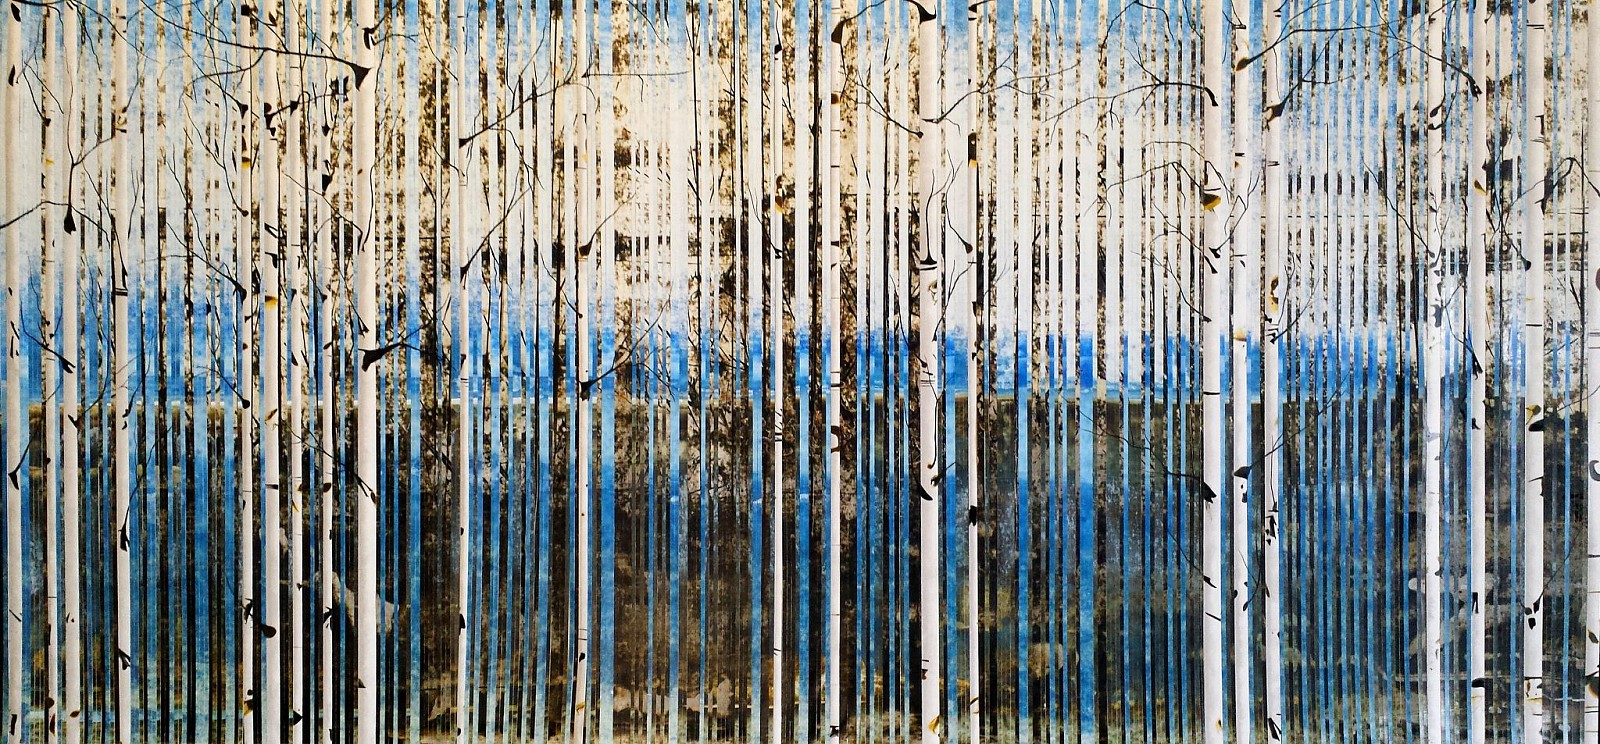 Anastasia Kimmett, Bare Aspens in Cobalt and Sepia Oil Pastel, Acrylic Ink on Paper Mounted on Panel